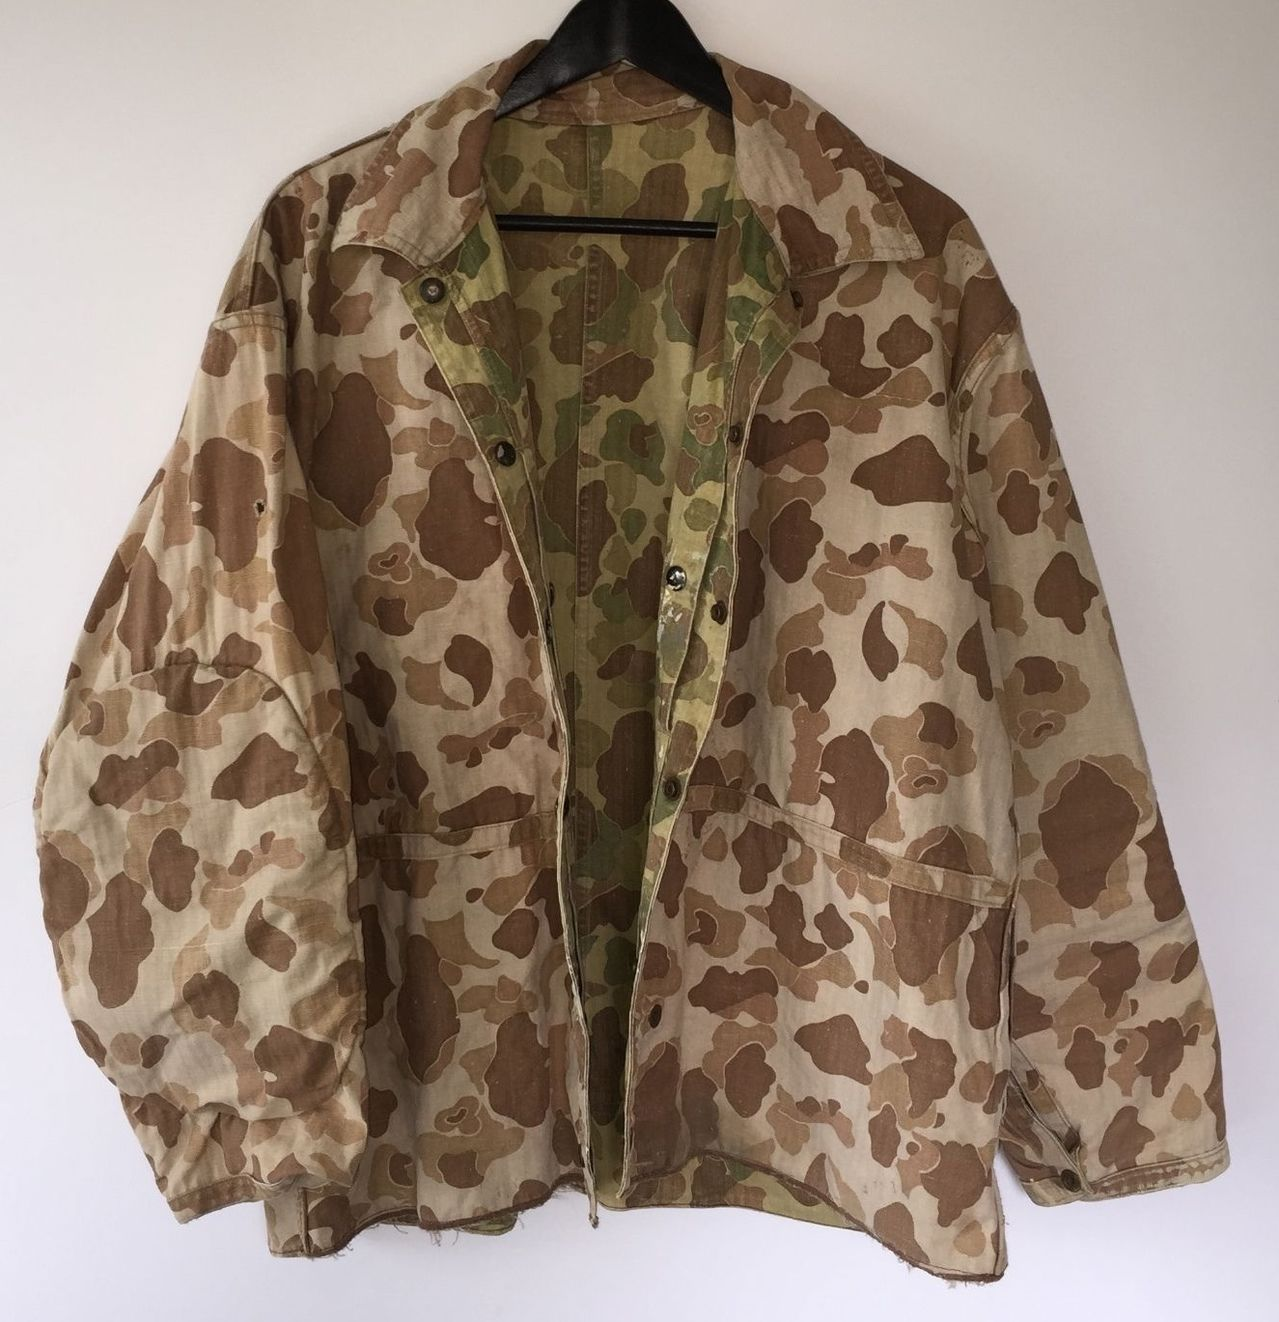 Paramarine Hbt Military Outfit Vintage Military Military Jacket